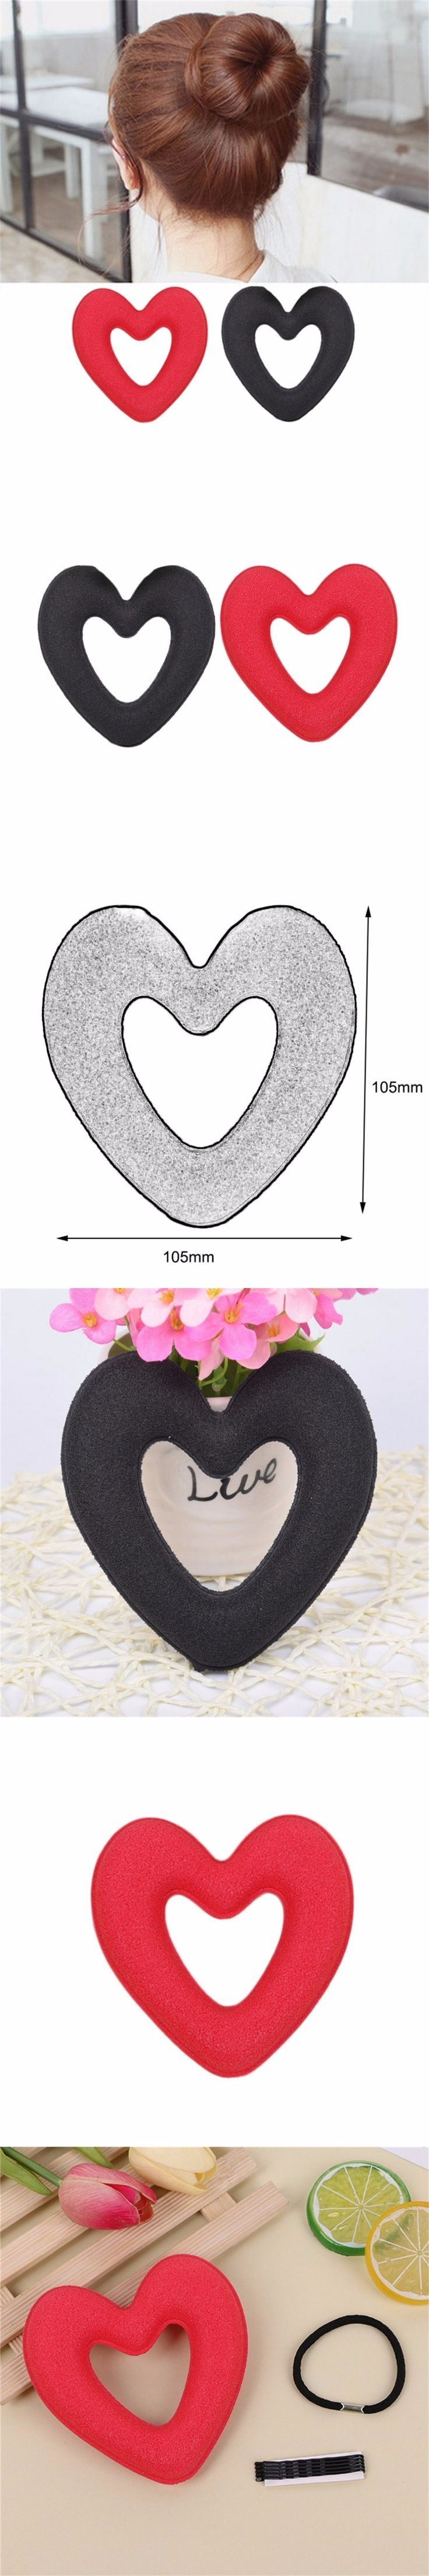 Korean Style Heart-Shaped Doughnuts Lady Lovely New Hair Bud Hair Braiding Tools Hair Braiders Hair Styling Tools new fashion